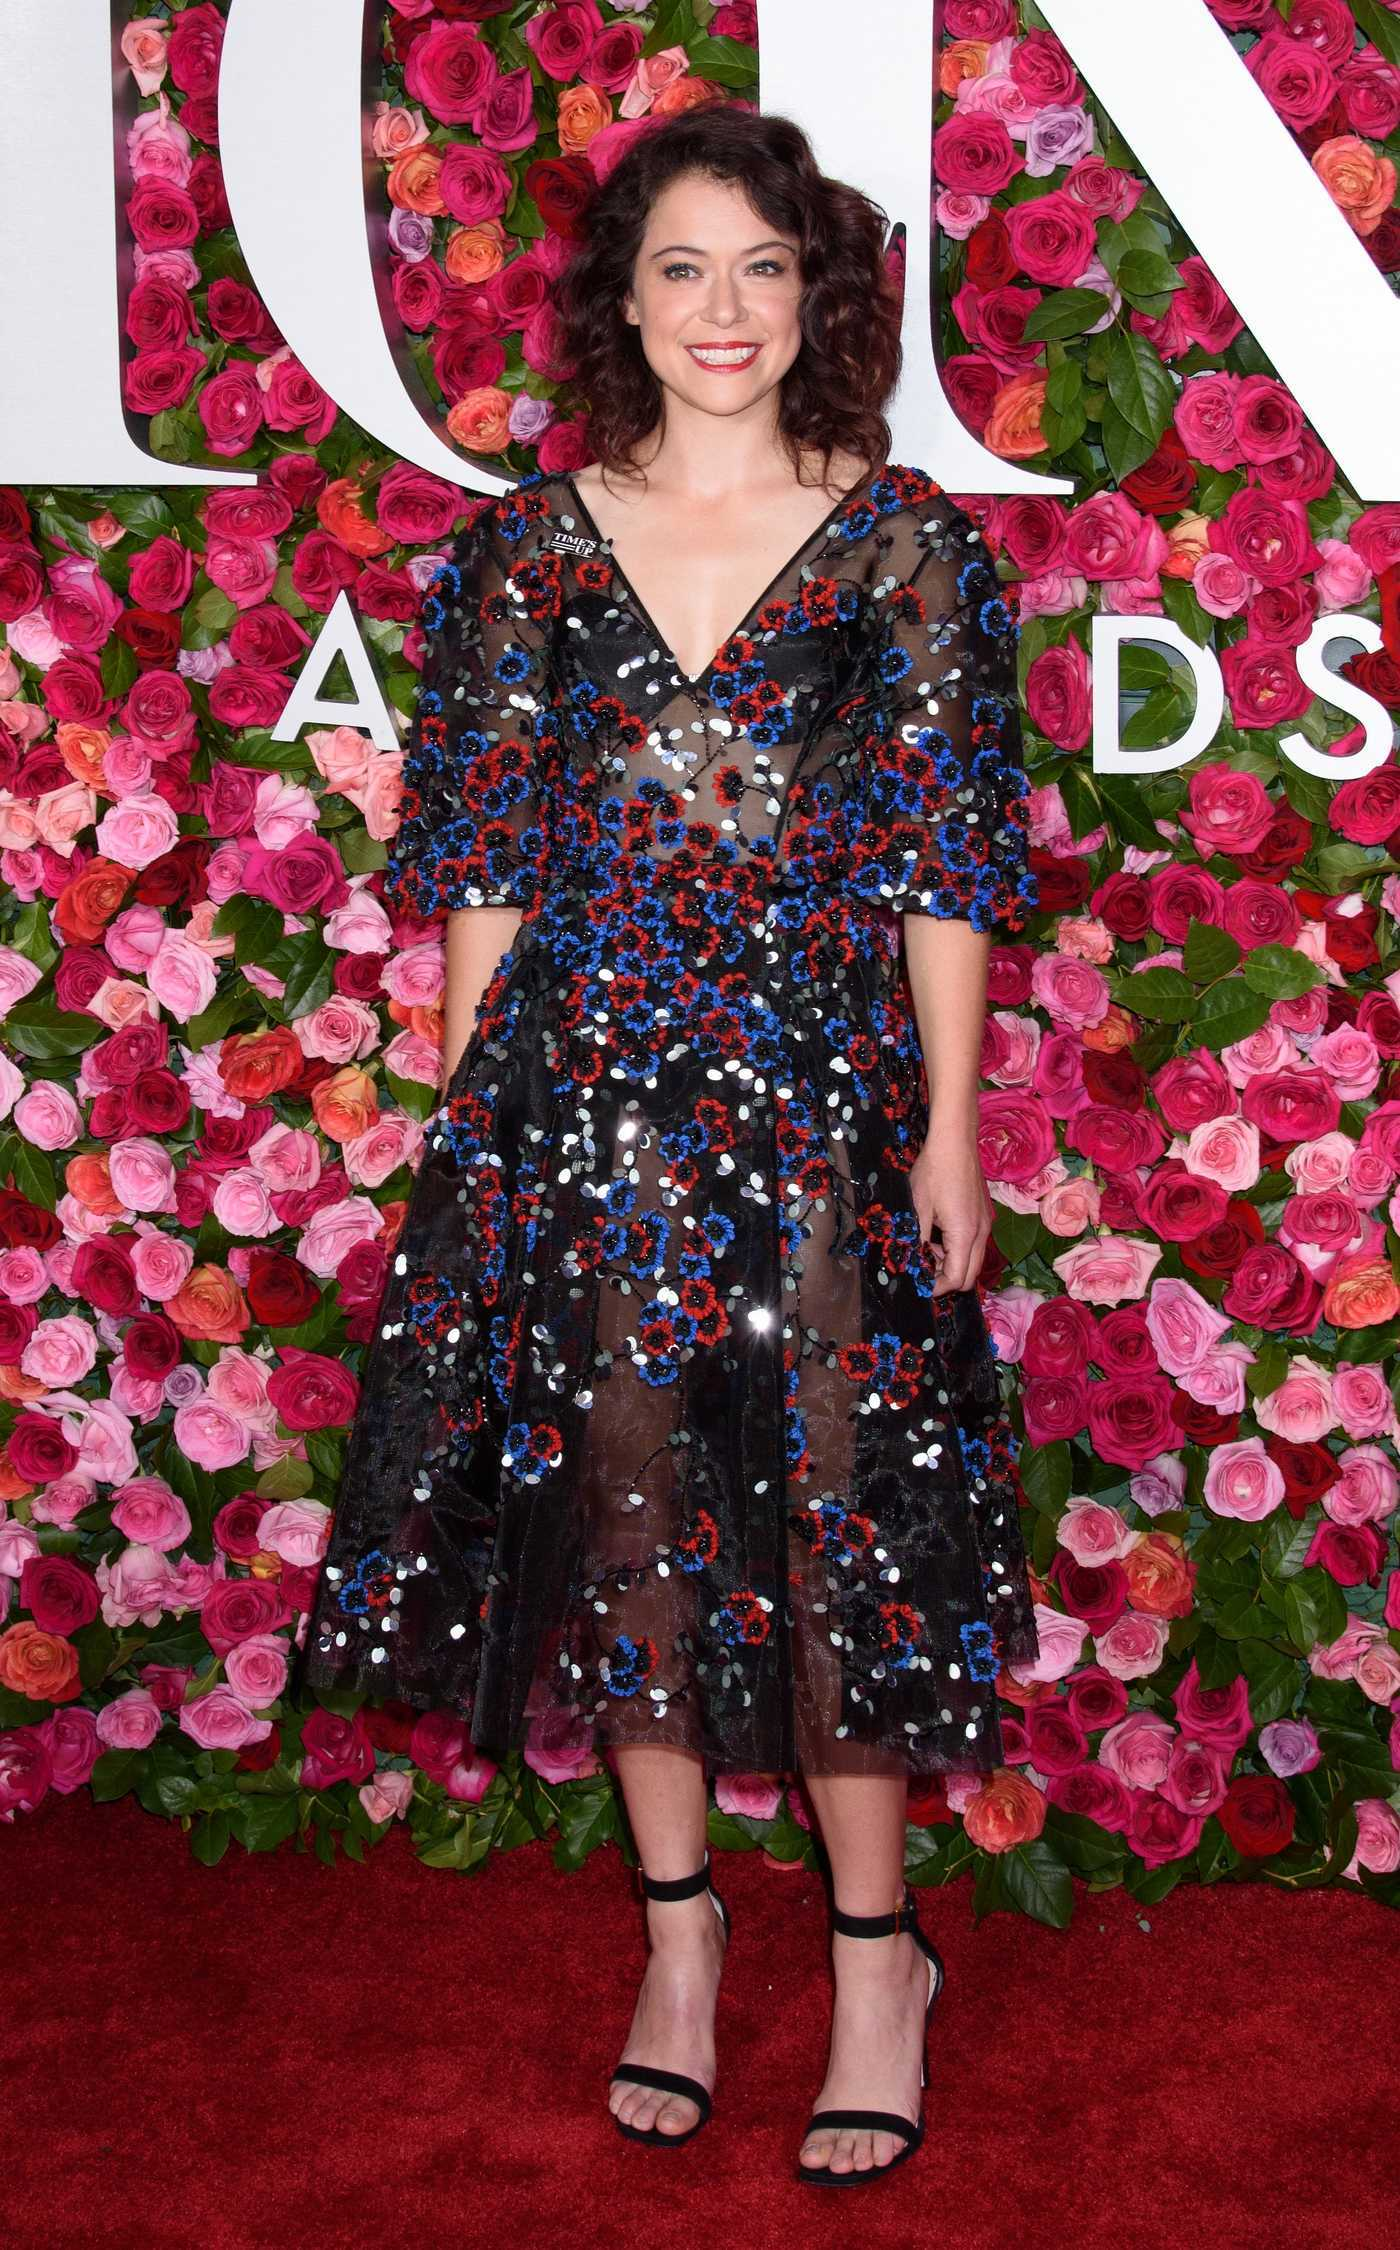 Tatiana Maslany at the 72nd Annual Tony Awards in New York City 06/10/2018